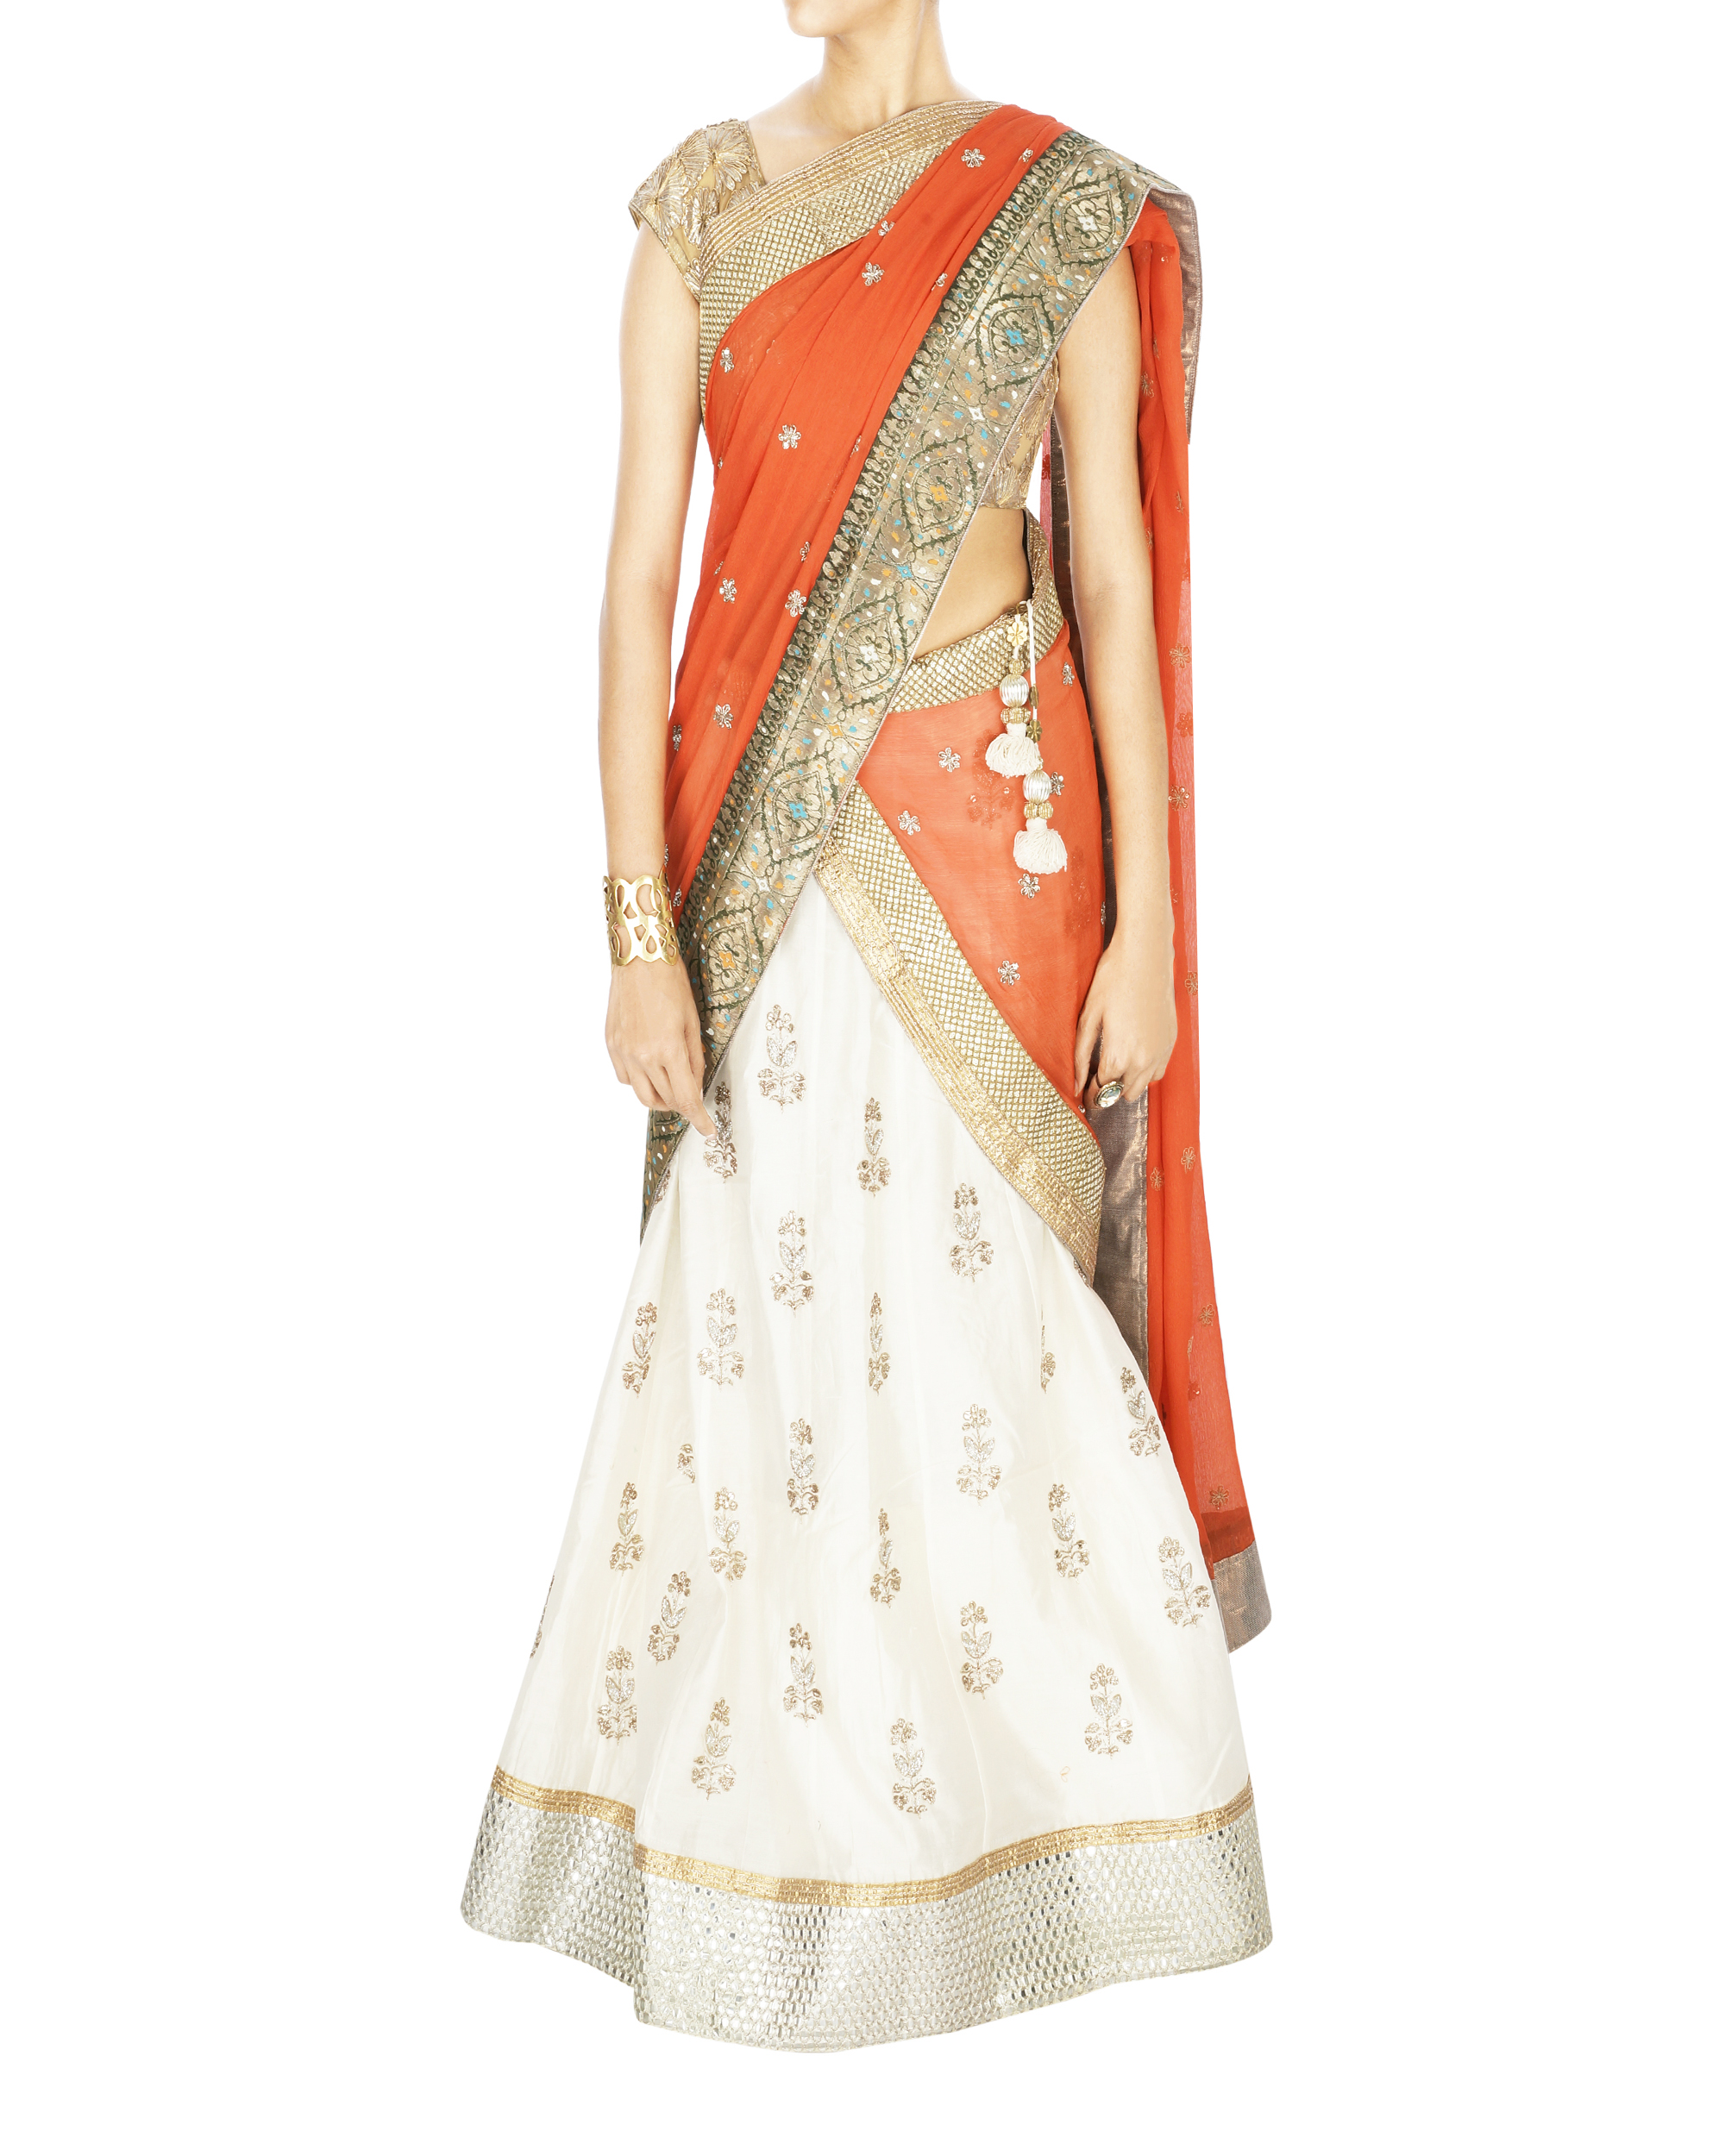 Offwhite lehanga with orange dupatta and golden blouse